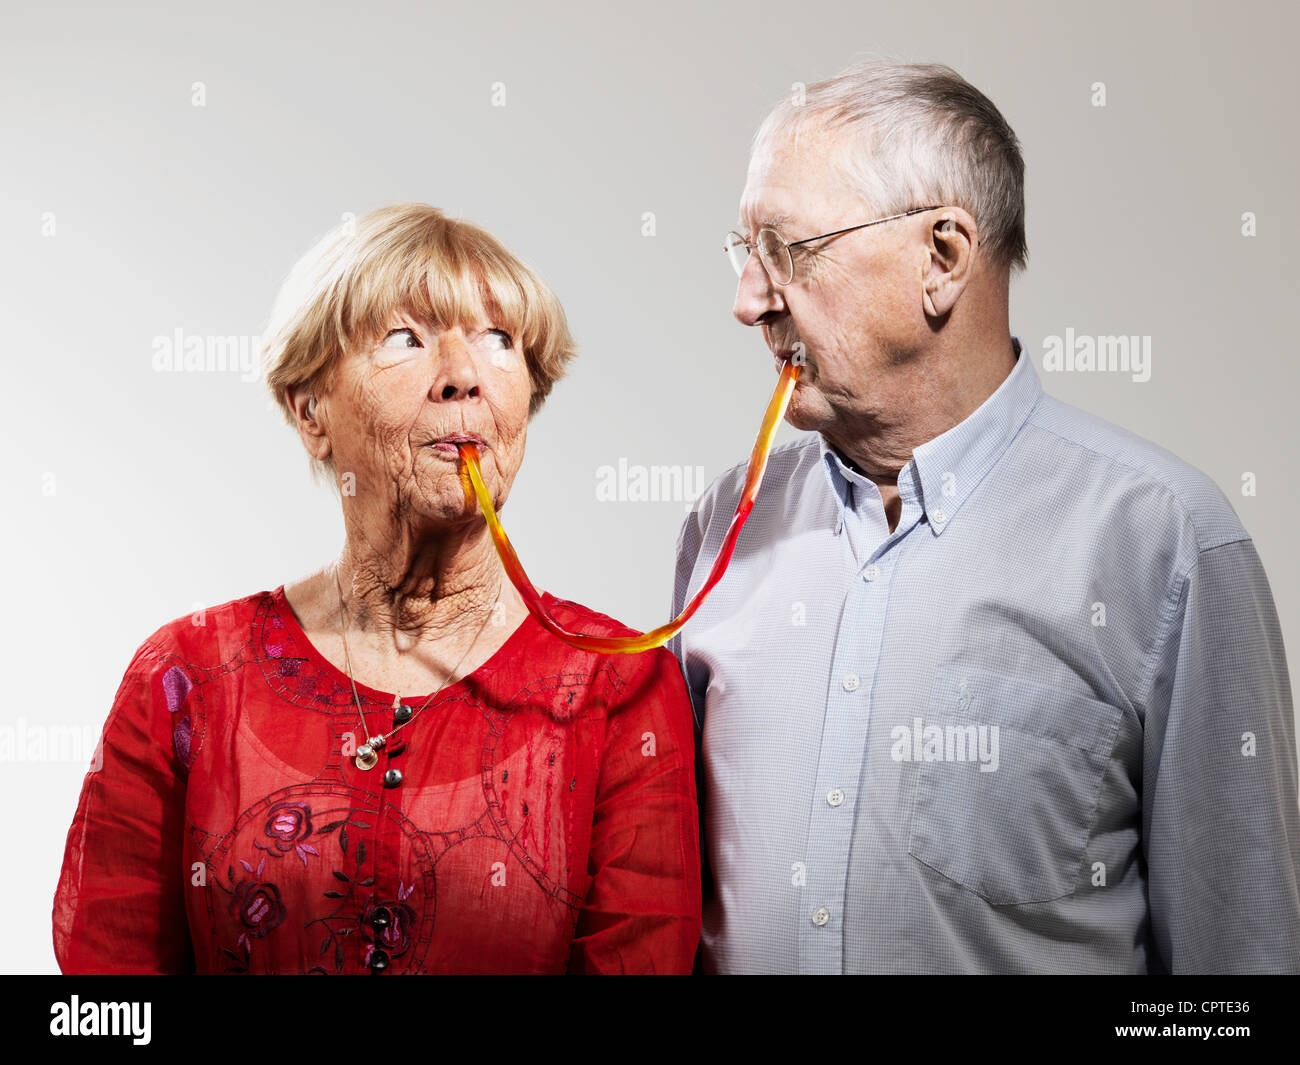 Couple de confiserie partage contre fond blanc Photo Stock